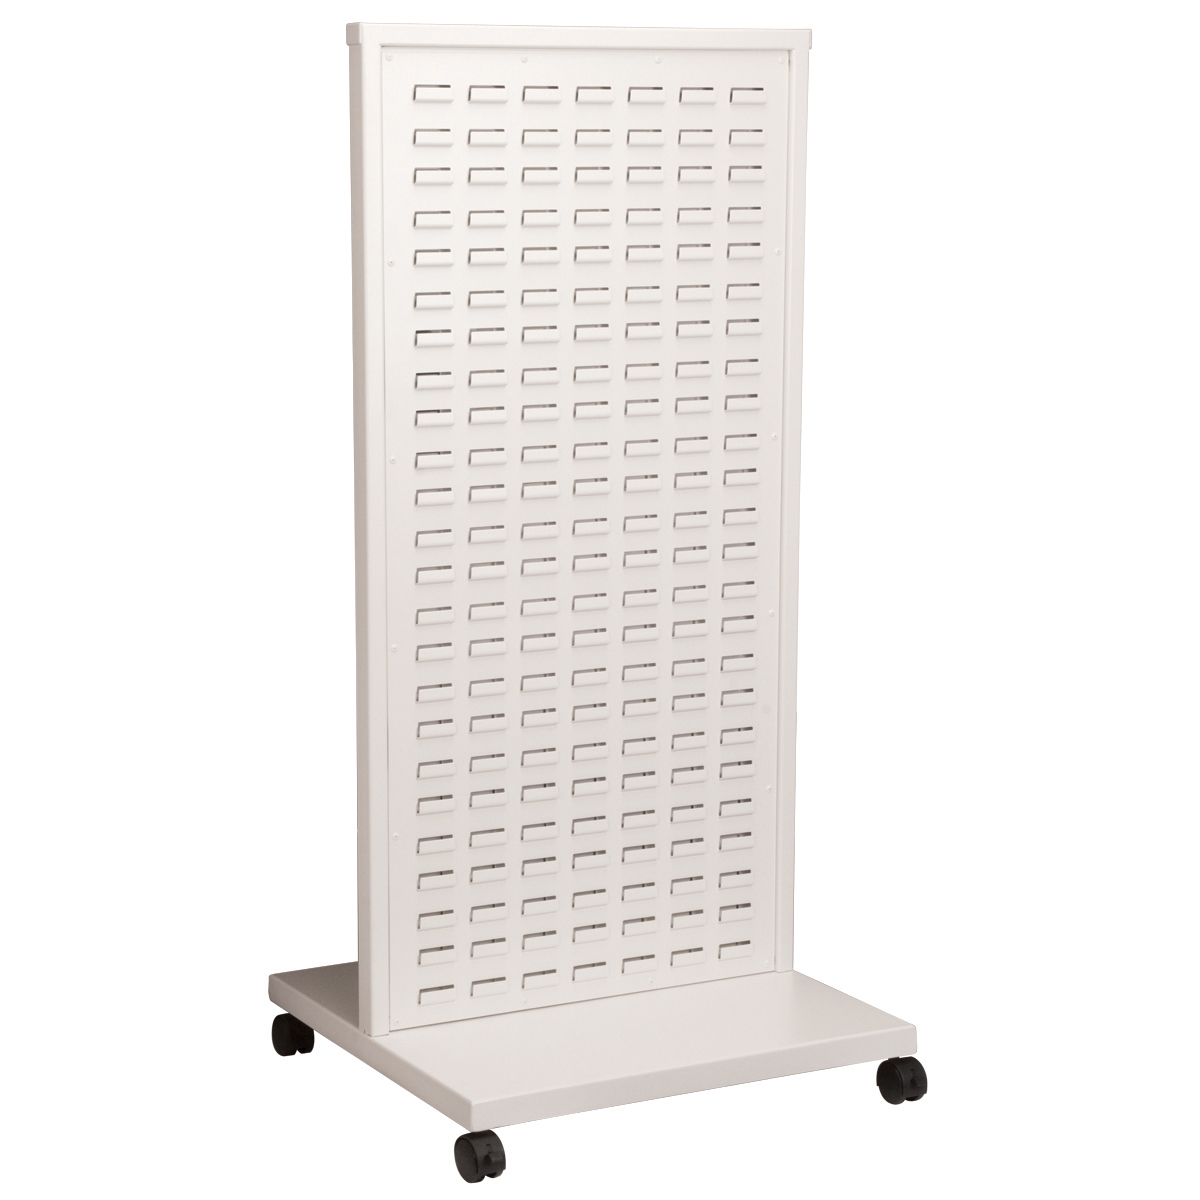 Item DISCONTINUED by Manufacturer.  ReadySpace Floor Unit, 24-5/8 x 23 x 52, White (30553).  This item sold in carton quantities of 1.